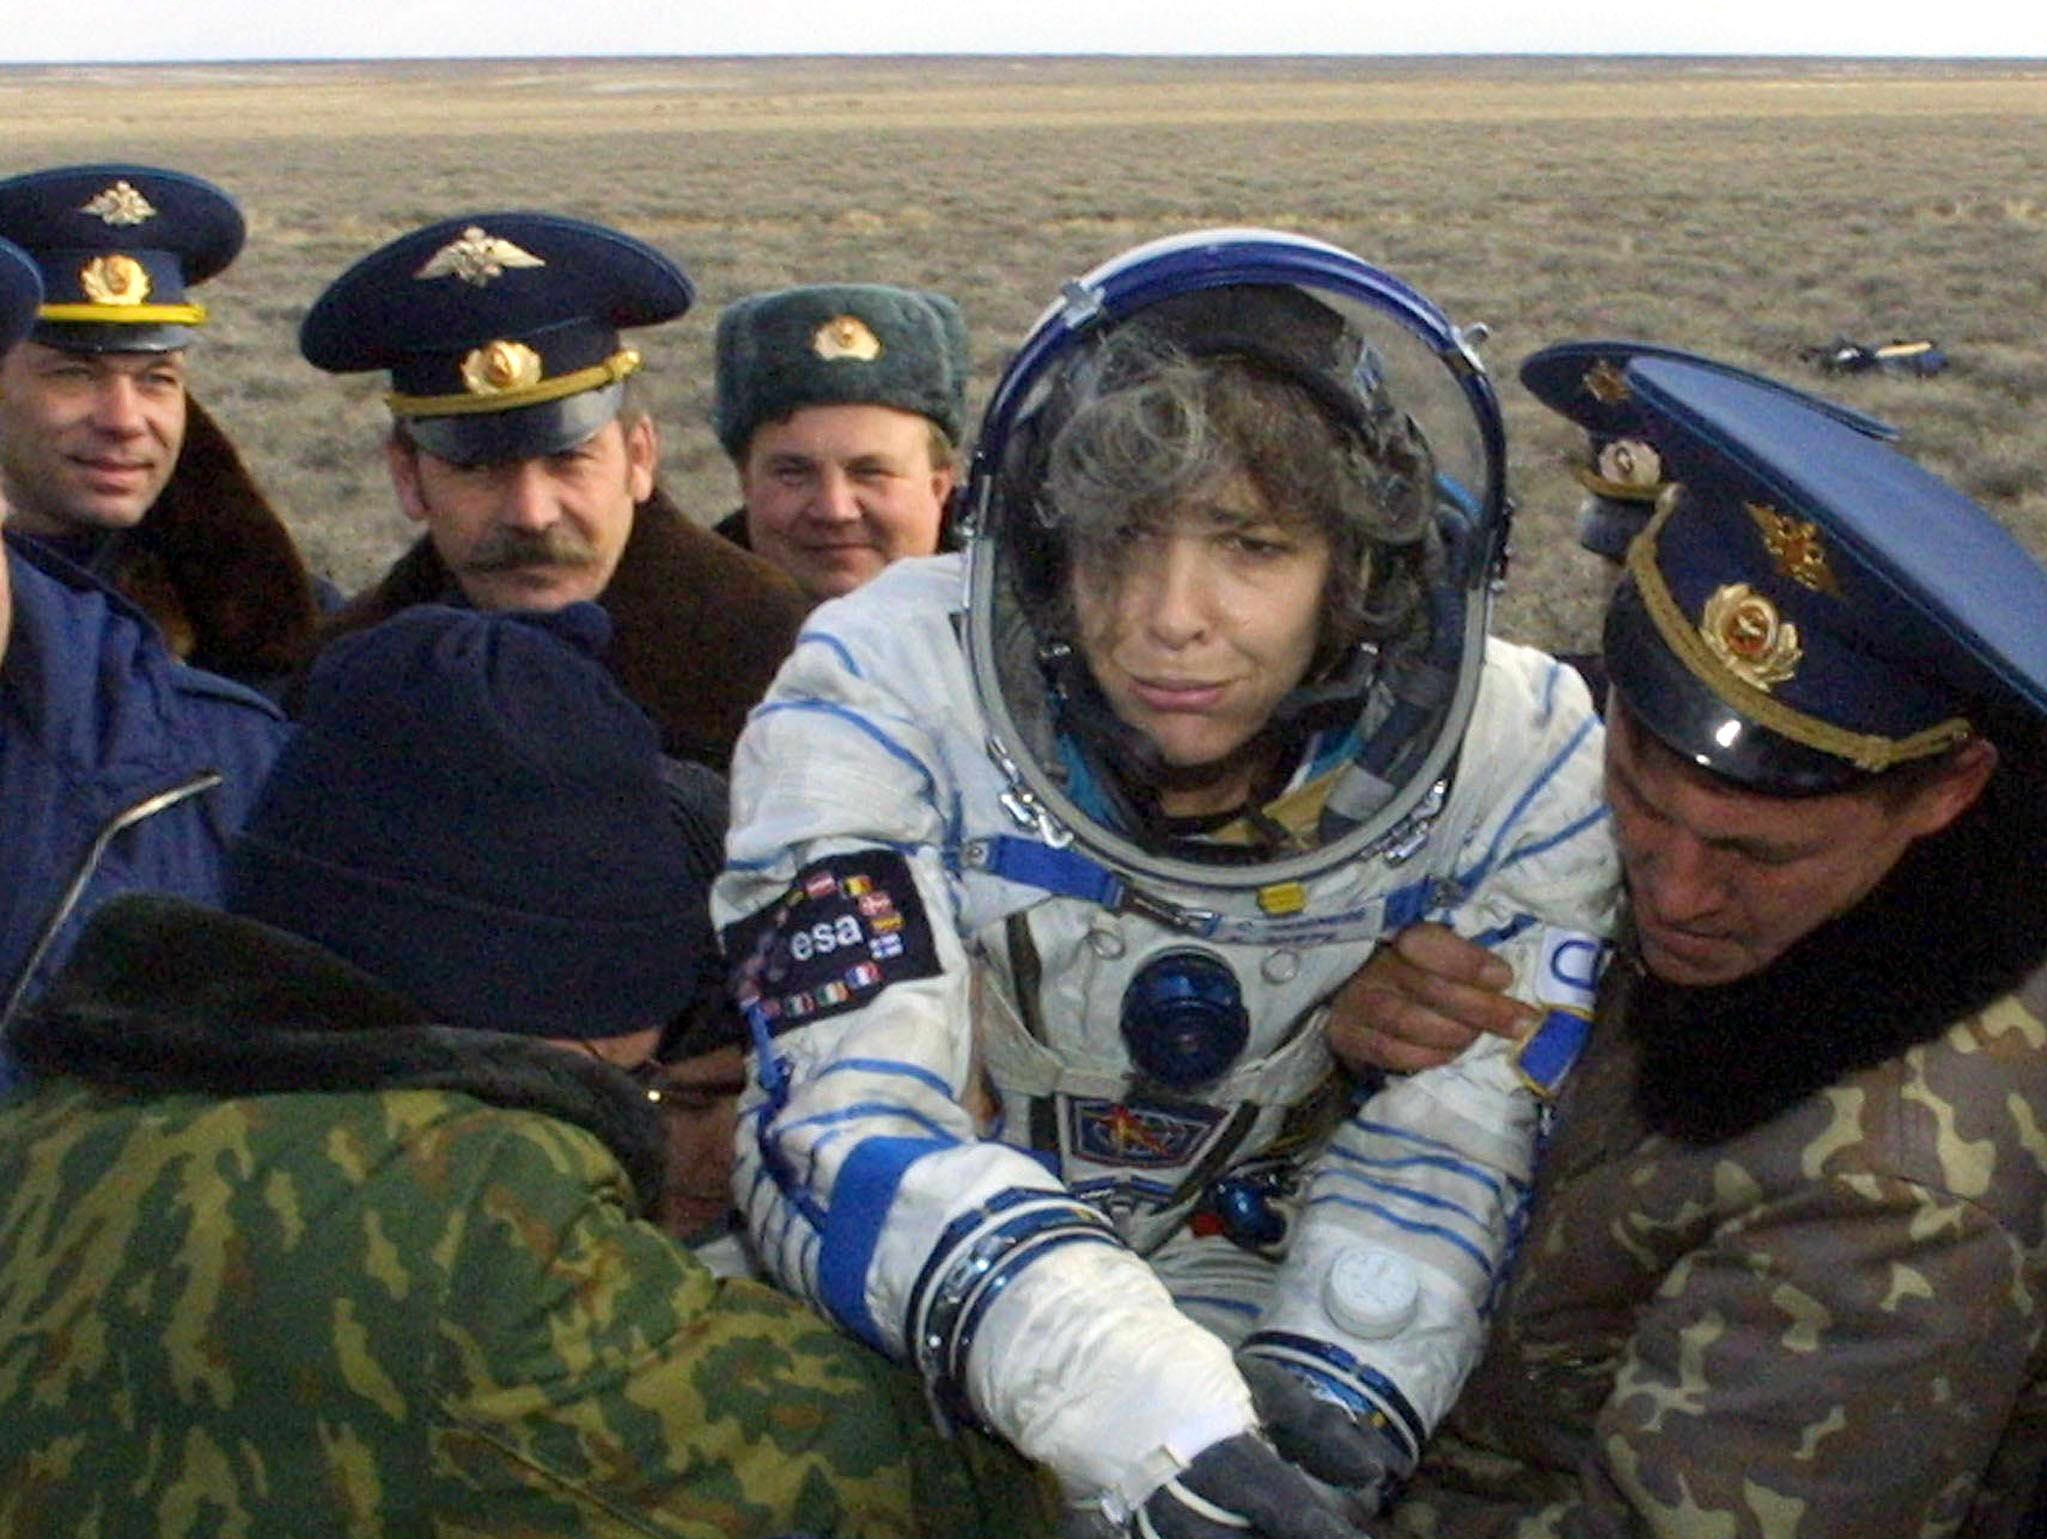 Officials of the Russian search and rescue service help French astronaut Claudie Haignere upon her landing in Kazakhstan, Oct. 31,  2001, after a mission on the International Space Station. Haignere, the first European woman on the international space station, and her two Russian teammates returned safely to earth in Kazakhstan.